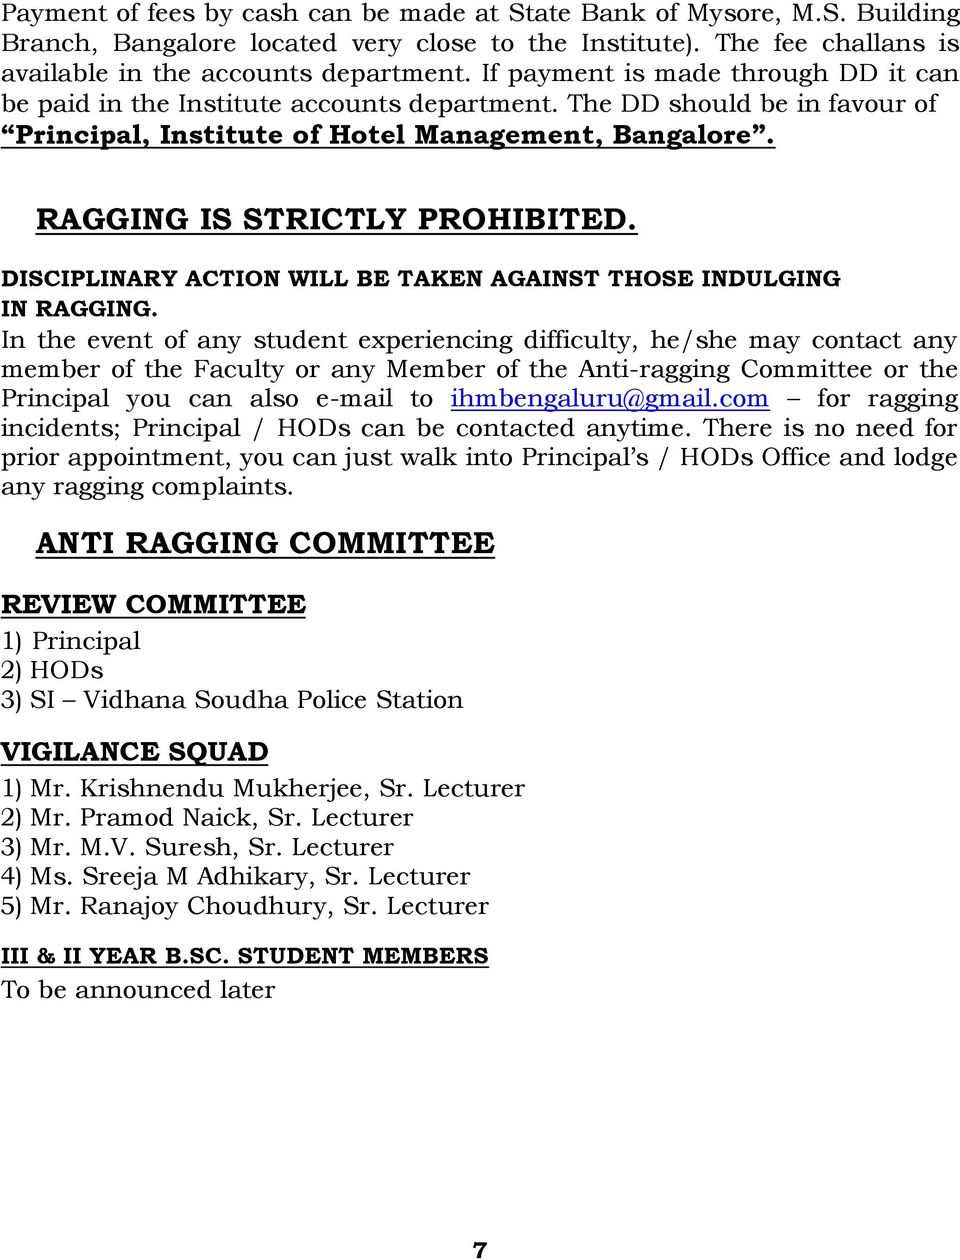 DISCIPLINARY ACTION WILL BE TAKEN AGAINST THOSE INDULGING IN RAGGING.